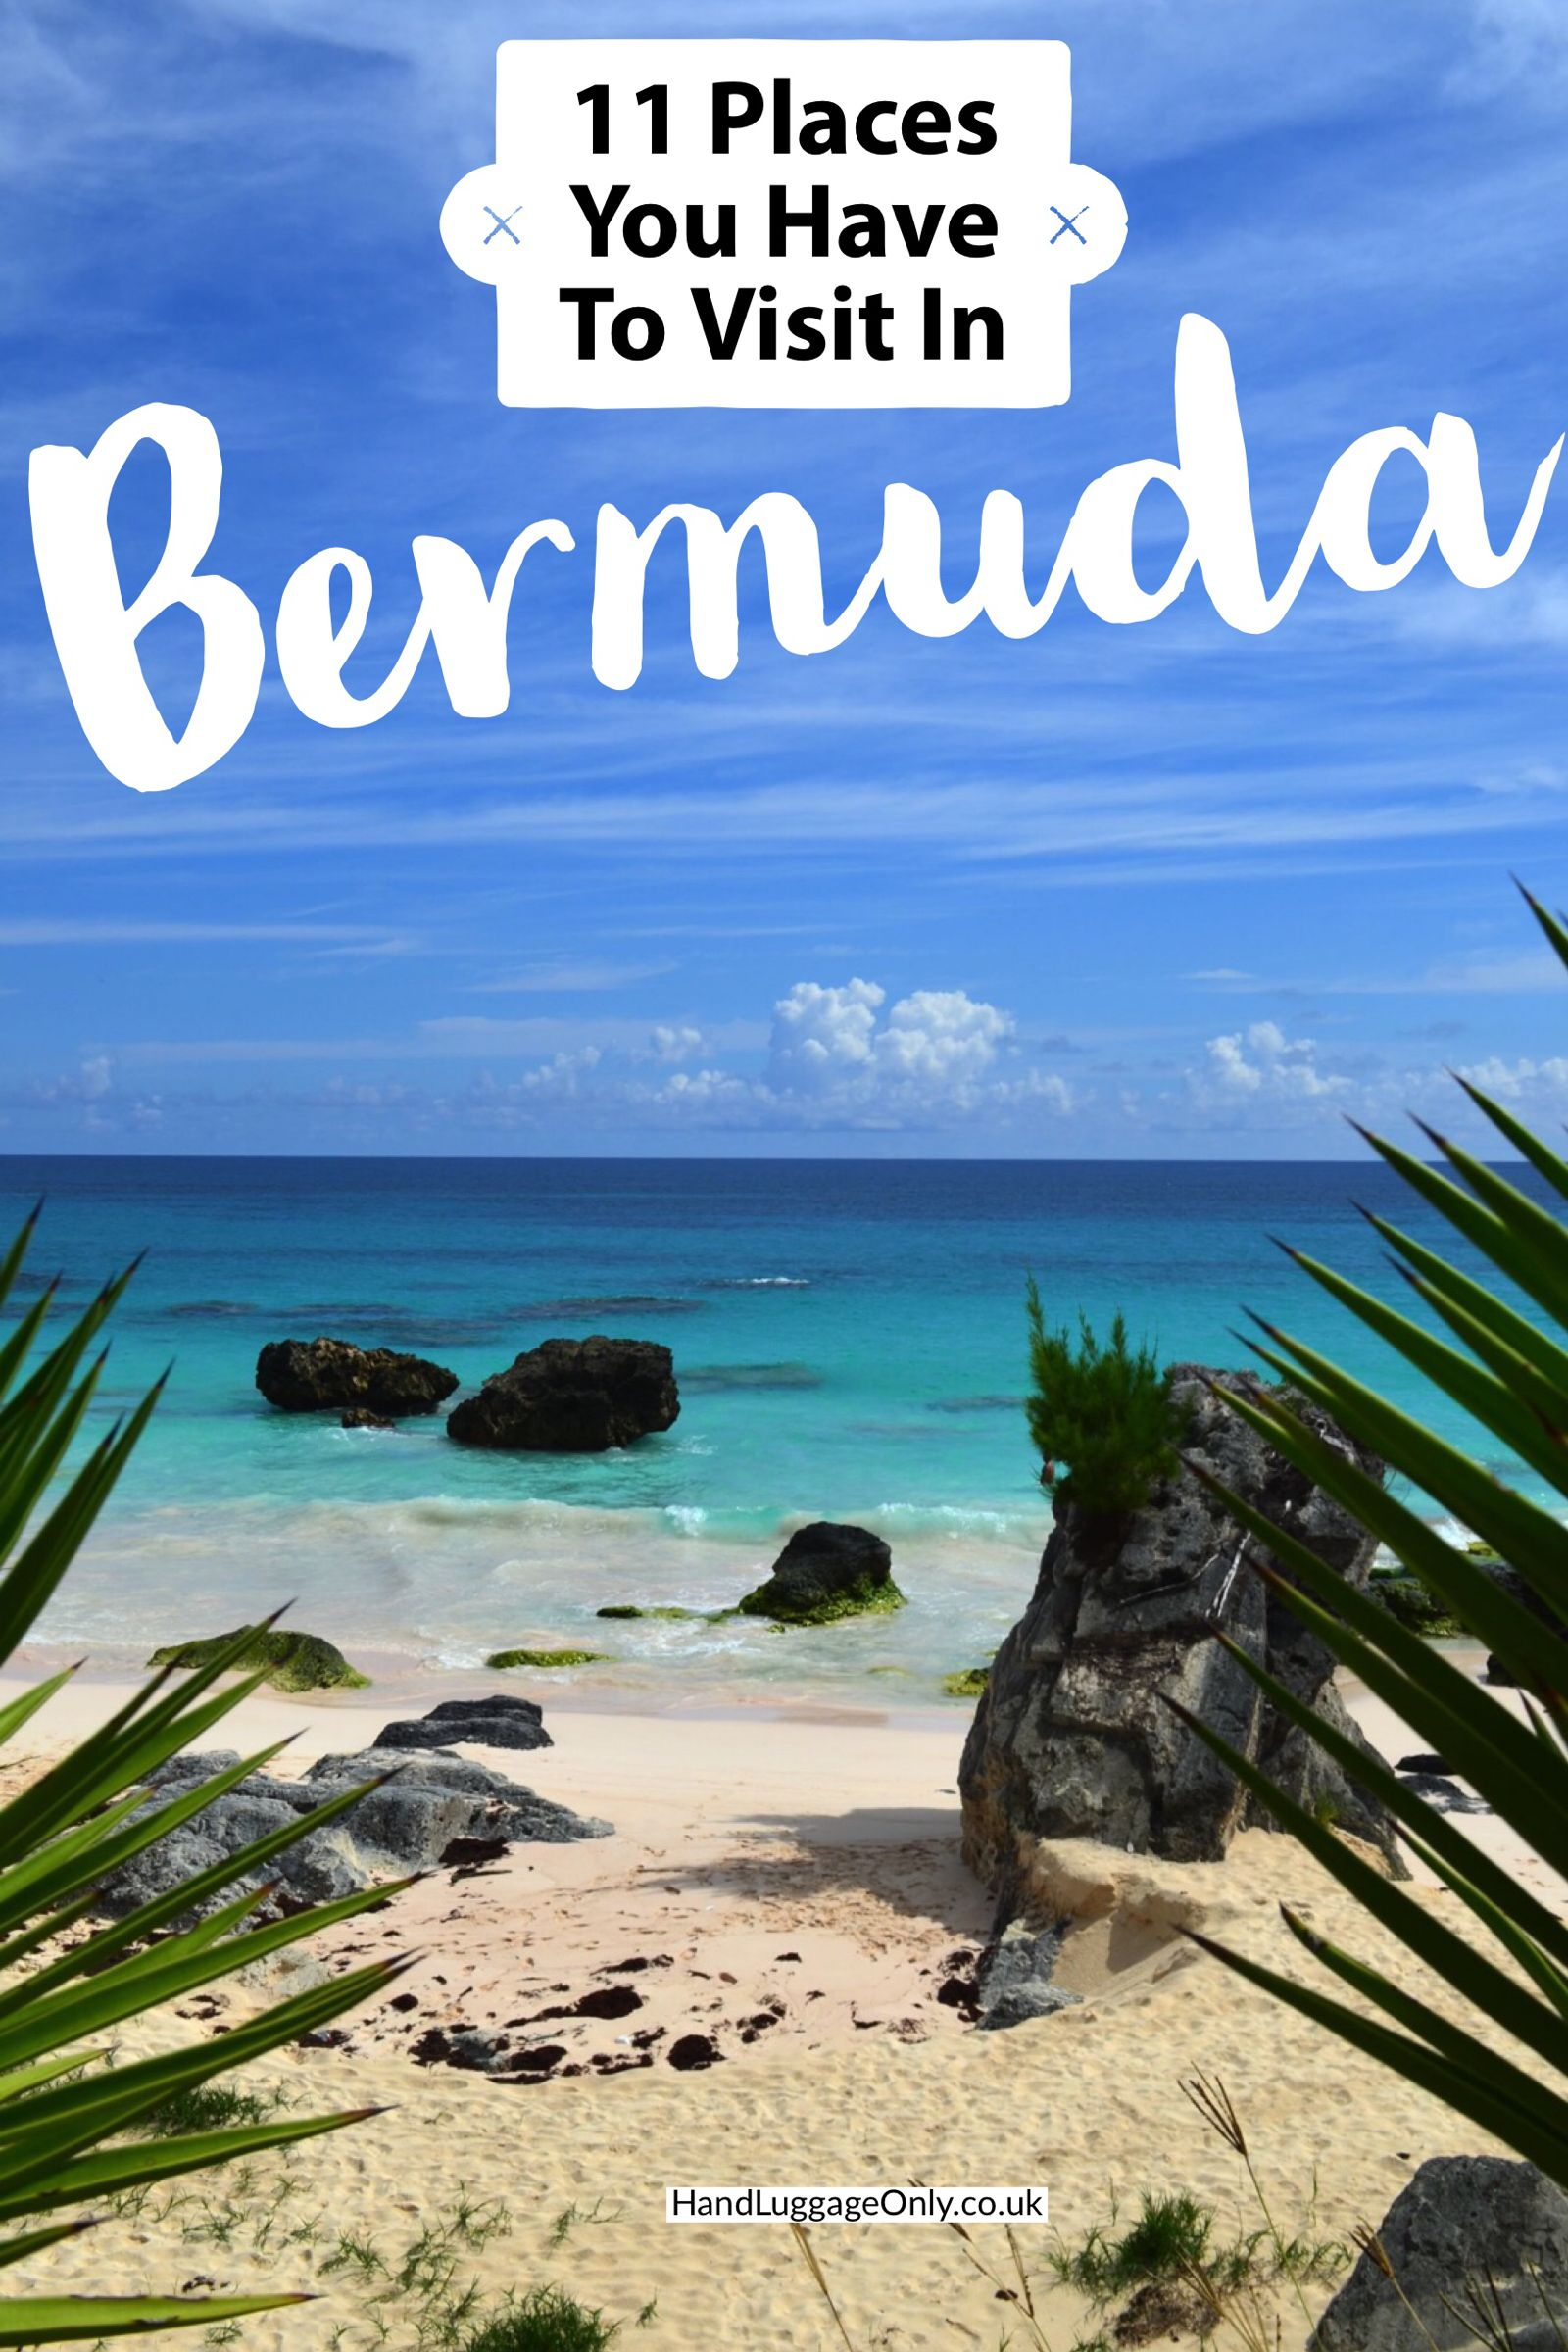 11 Things You Have To See and Do When Visiting Bermuda (15)